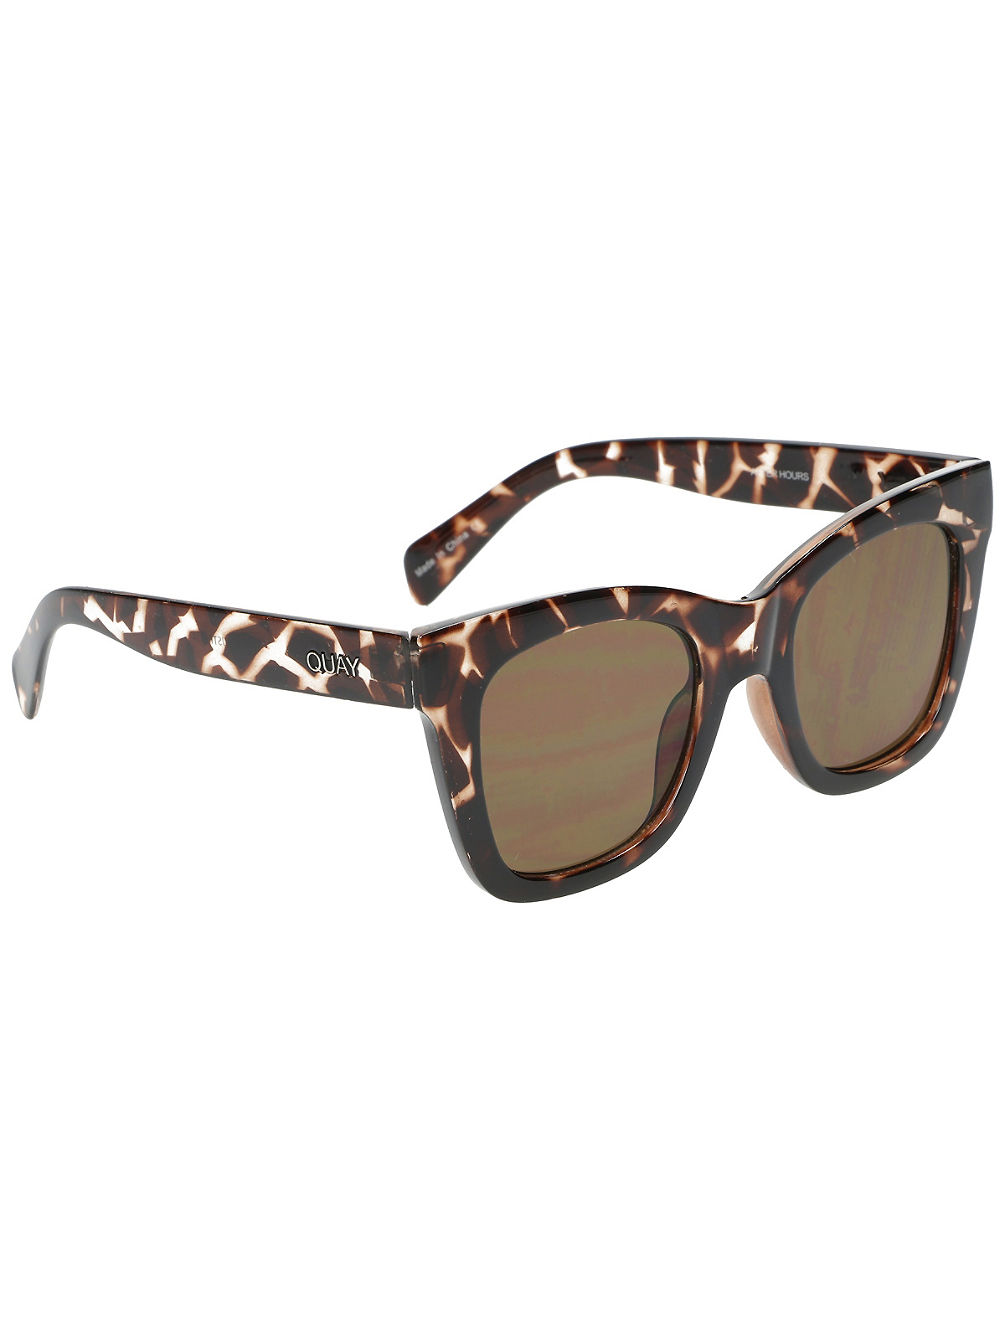 After Hours Tort Brown Sonnenbrille